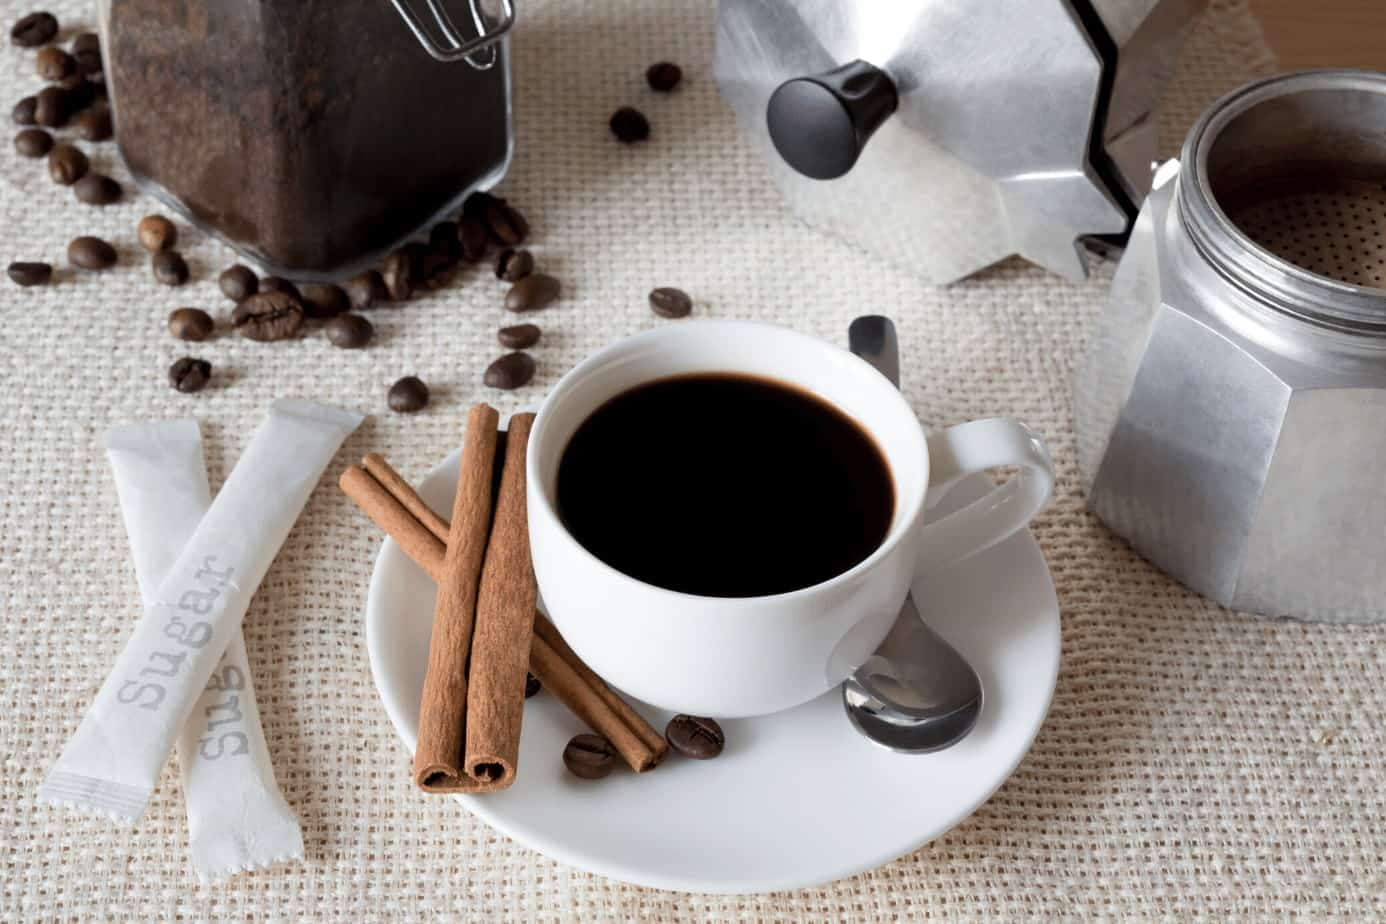 cup of coffee and coffee beans with cinnamon sticks